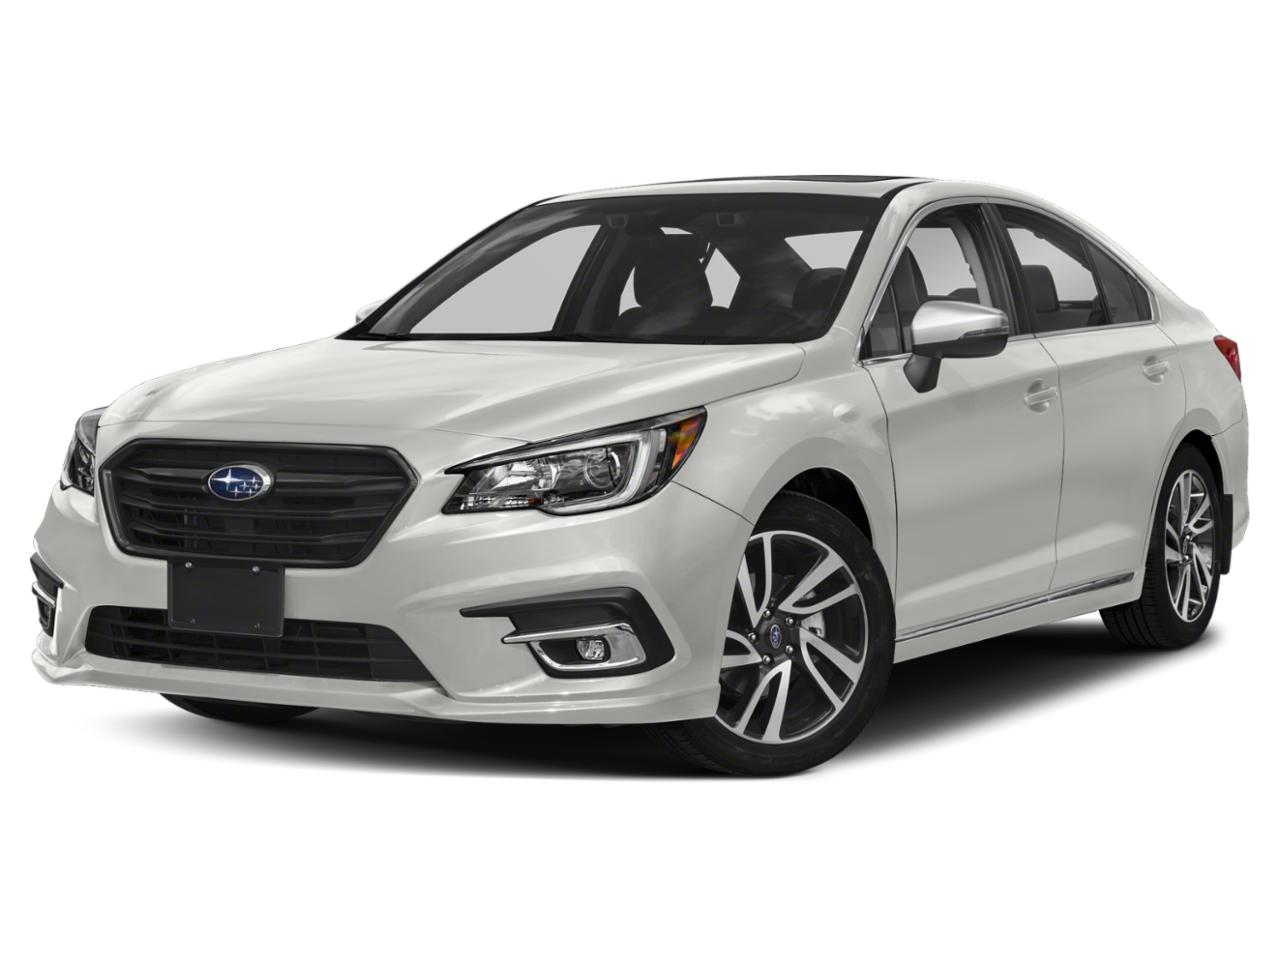 2018 Subaru Legacy Vehicle Photo in Bowie, MD 20716